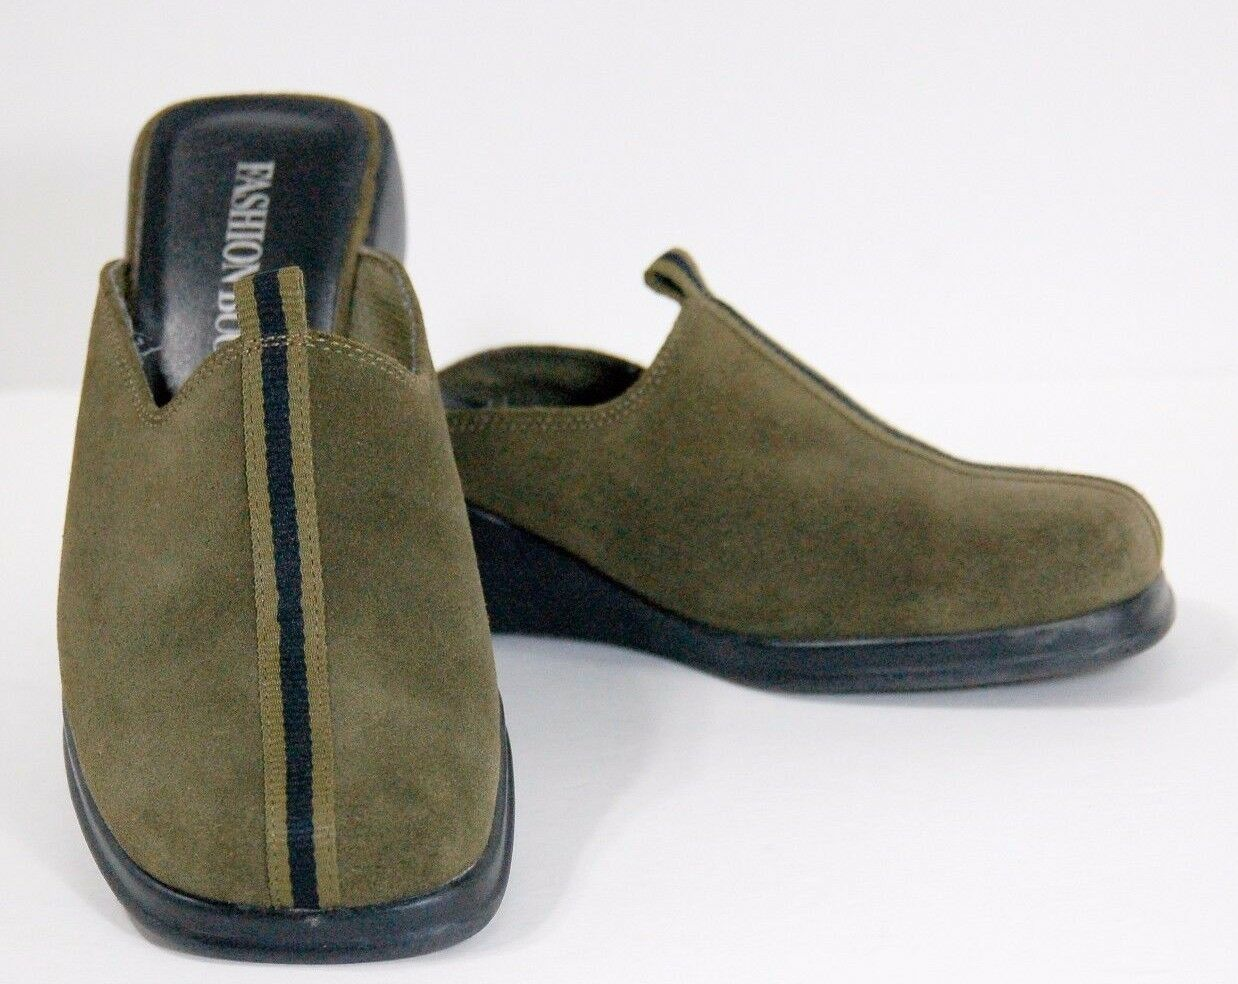 Fashion Bug women's size shoes wedge heel slip-on leather suede size women's 8 green 79c602